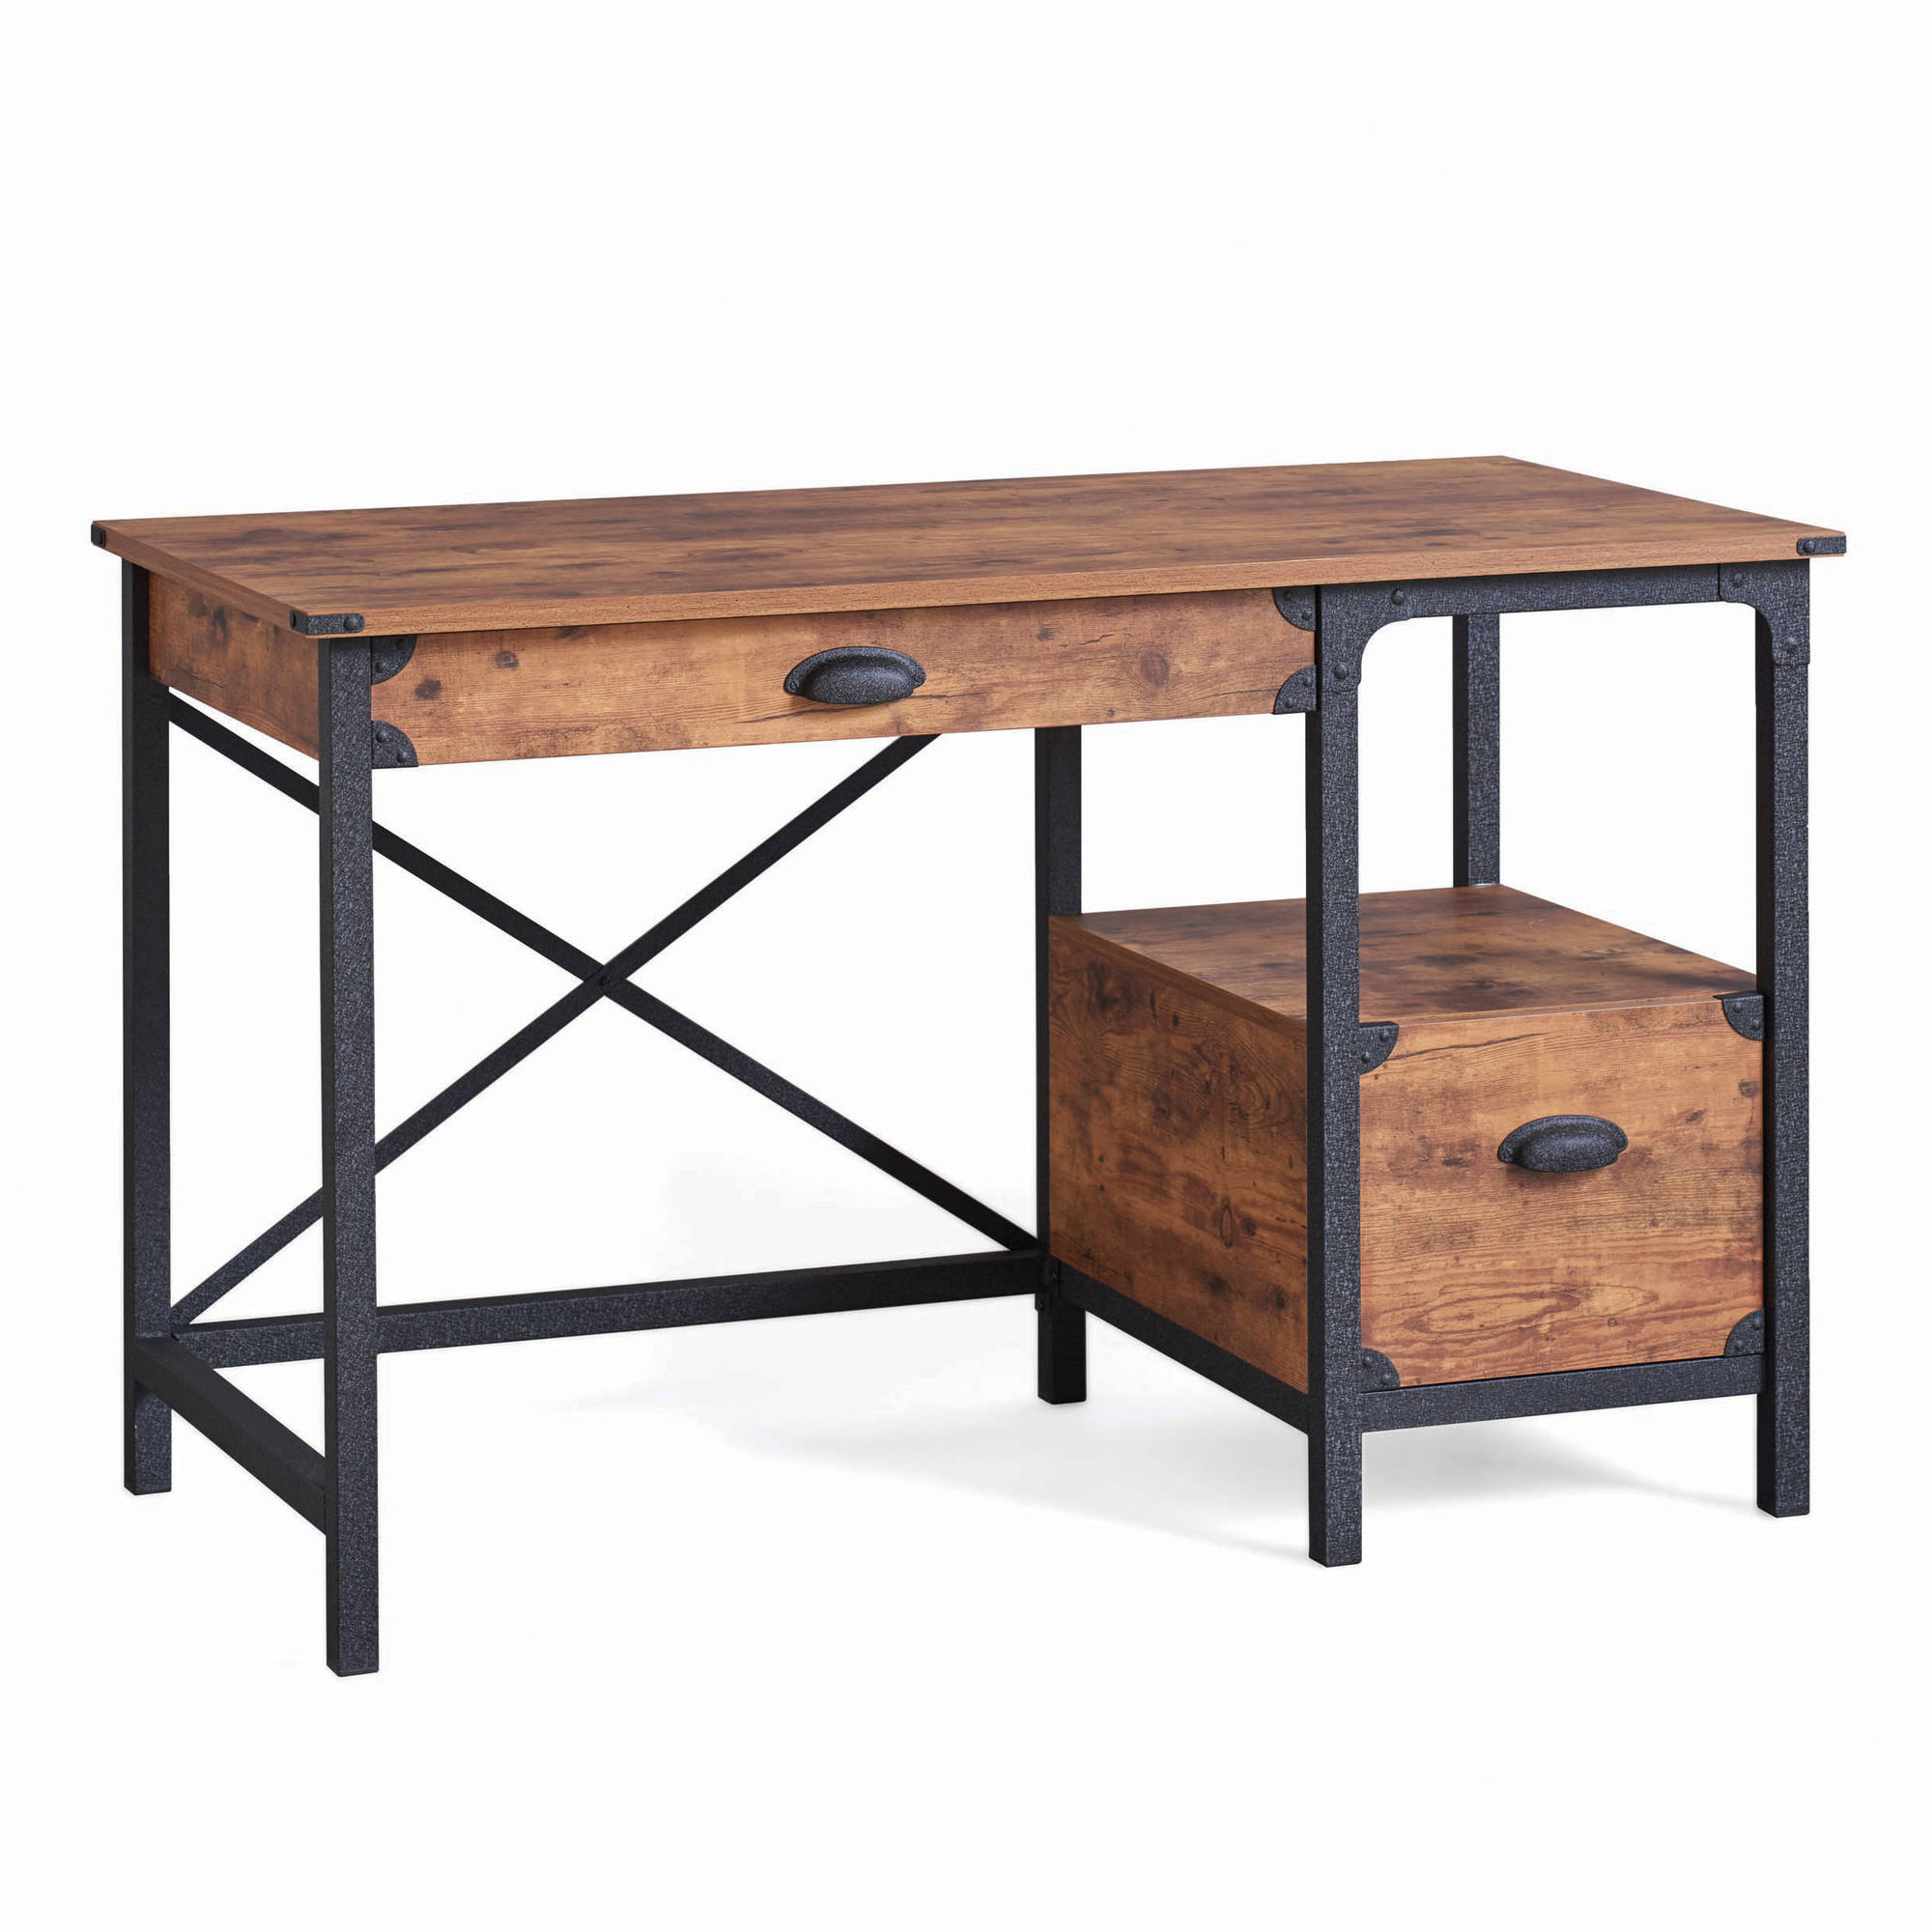 Charmant Better Homes U0026 Gardens Rustic Country Desk, Weathered Pine Finish    Walmart.com